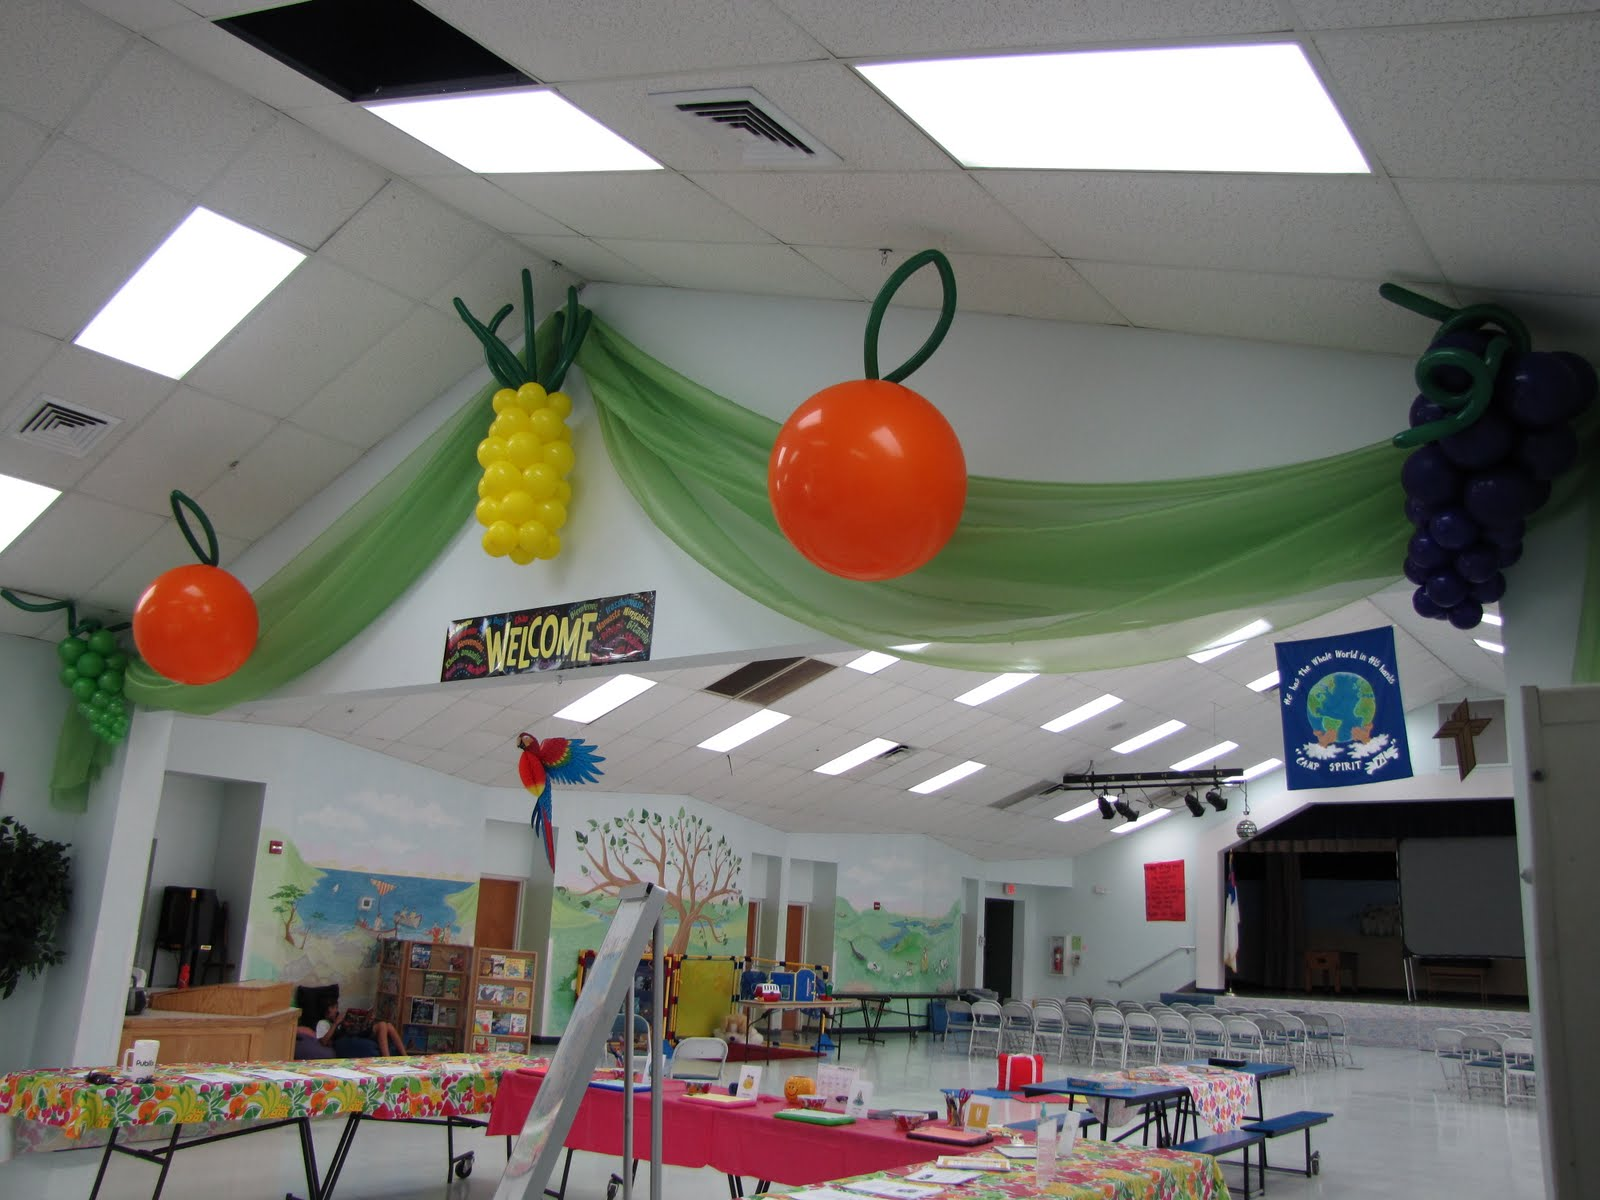 School Spirit Decorations and Party Supplies Having school spirit is one of the best ways to improve morale around your school! With a little help from PartyCheap, school spirit in your school district can be at an all-time high!